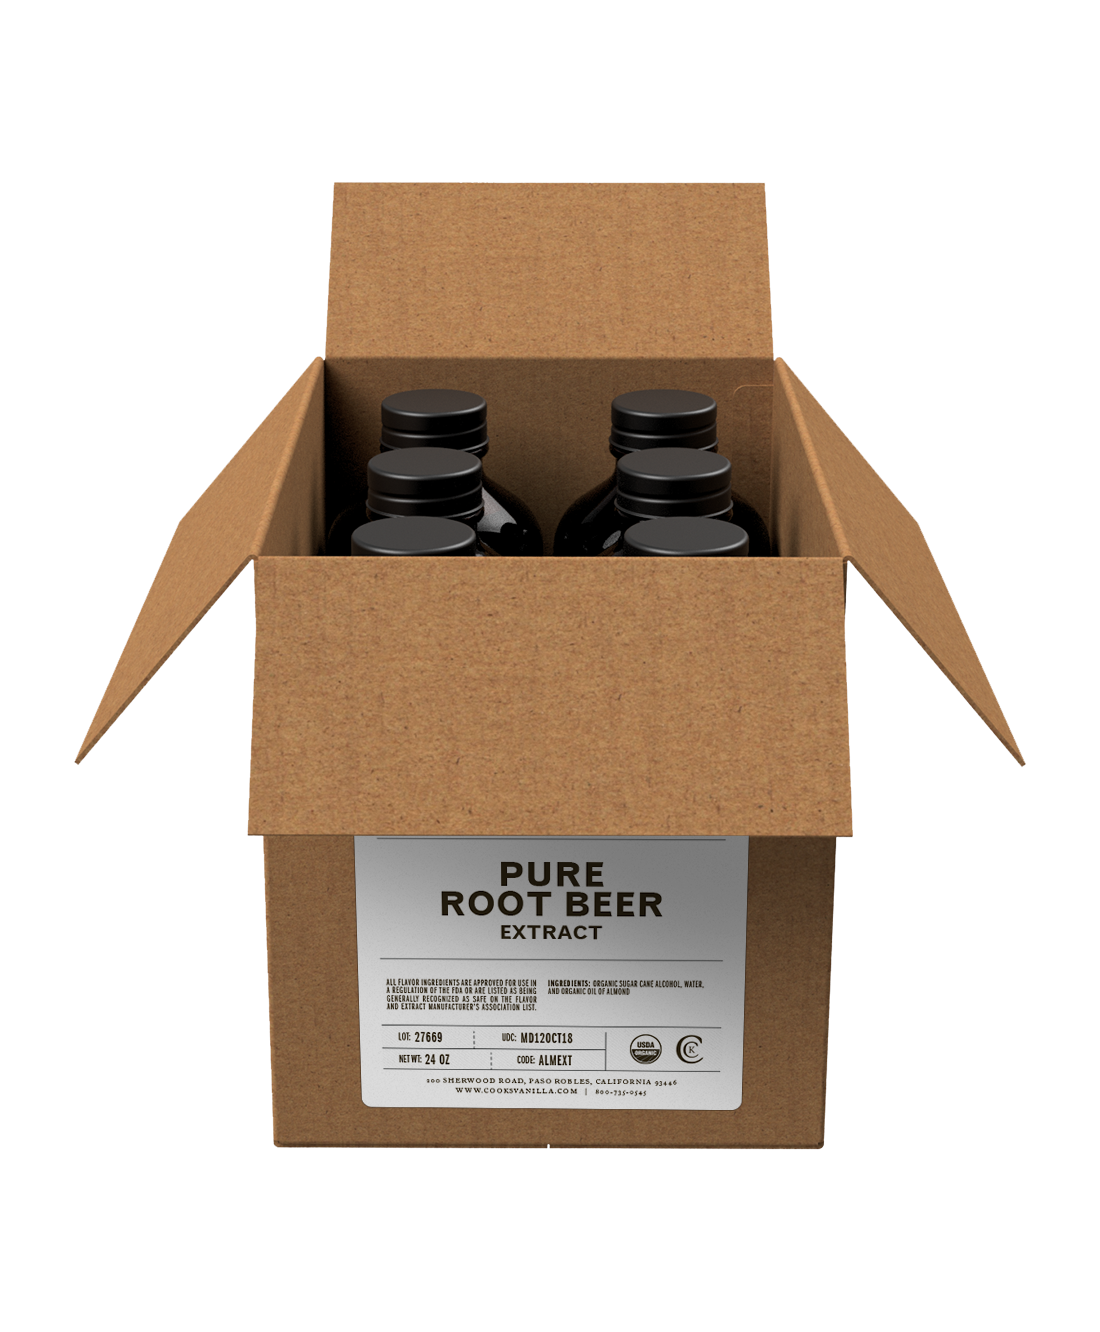 Flavoring | Root Beer Extract (Pure) | Packs and Cases